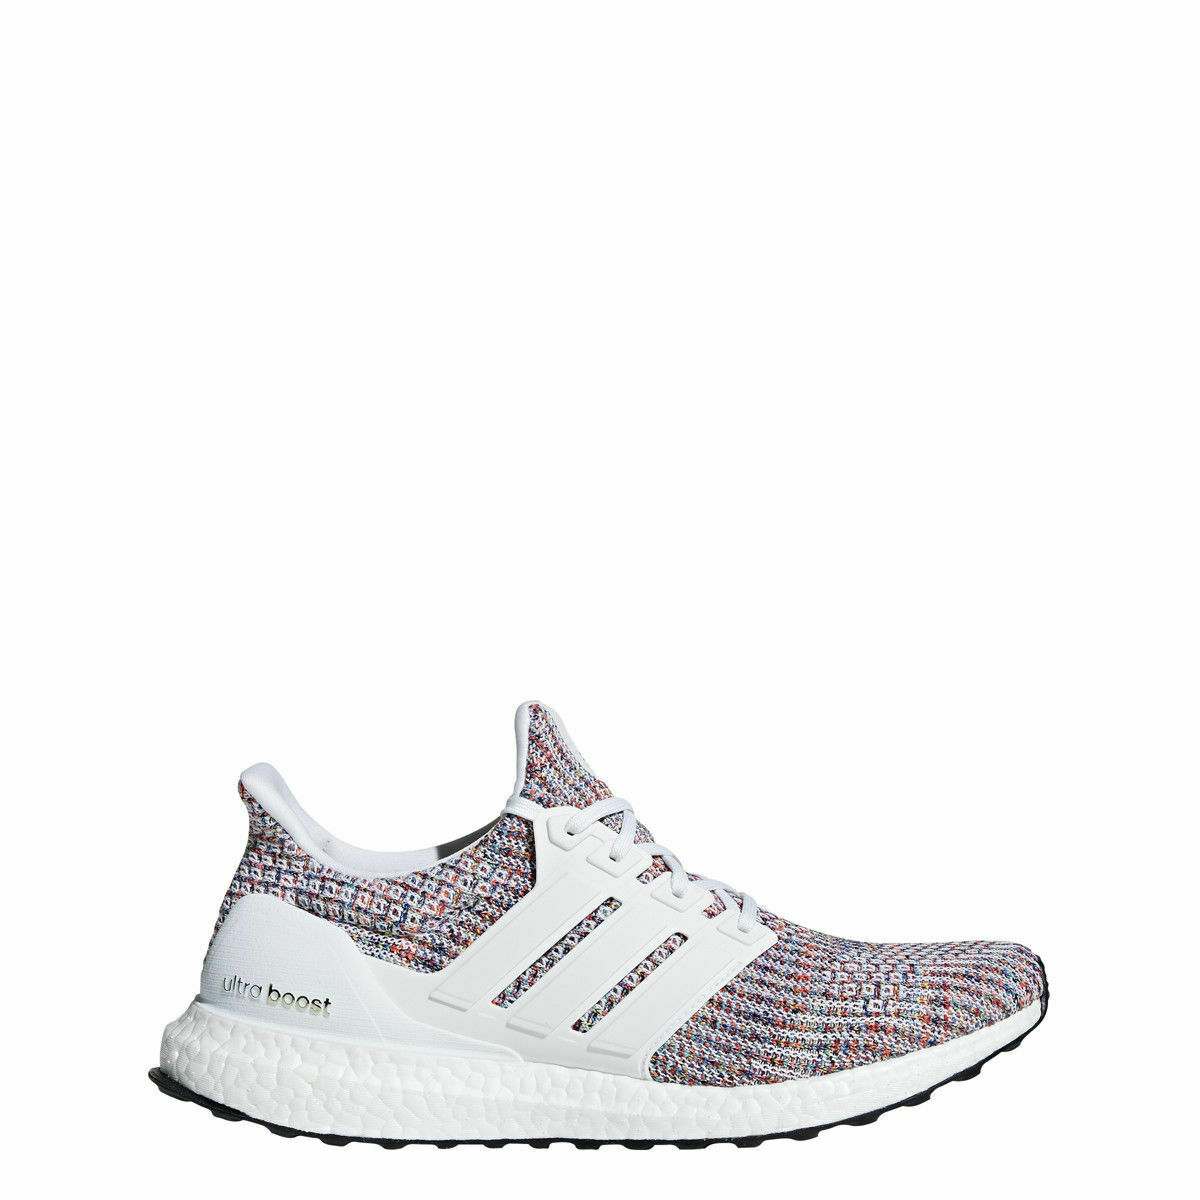 Adidas Men's Ultra Boost - NEW IN BOX -FREE SHIPPING - White Red bluee - CM8111 +